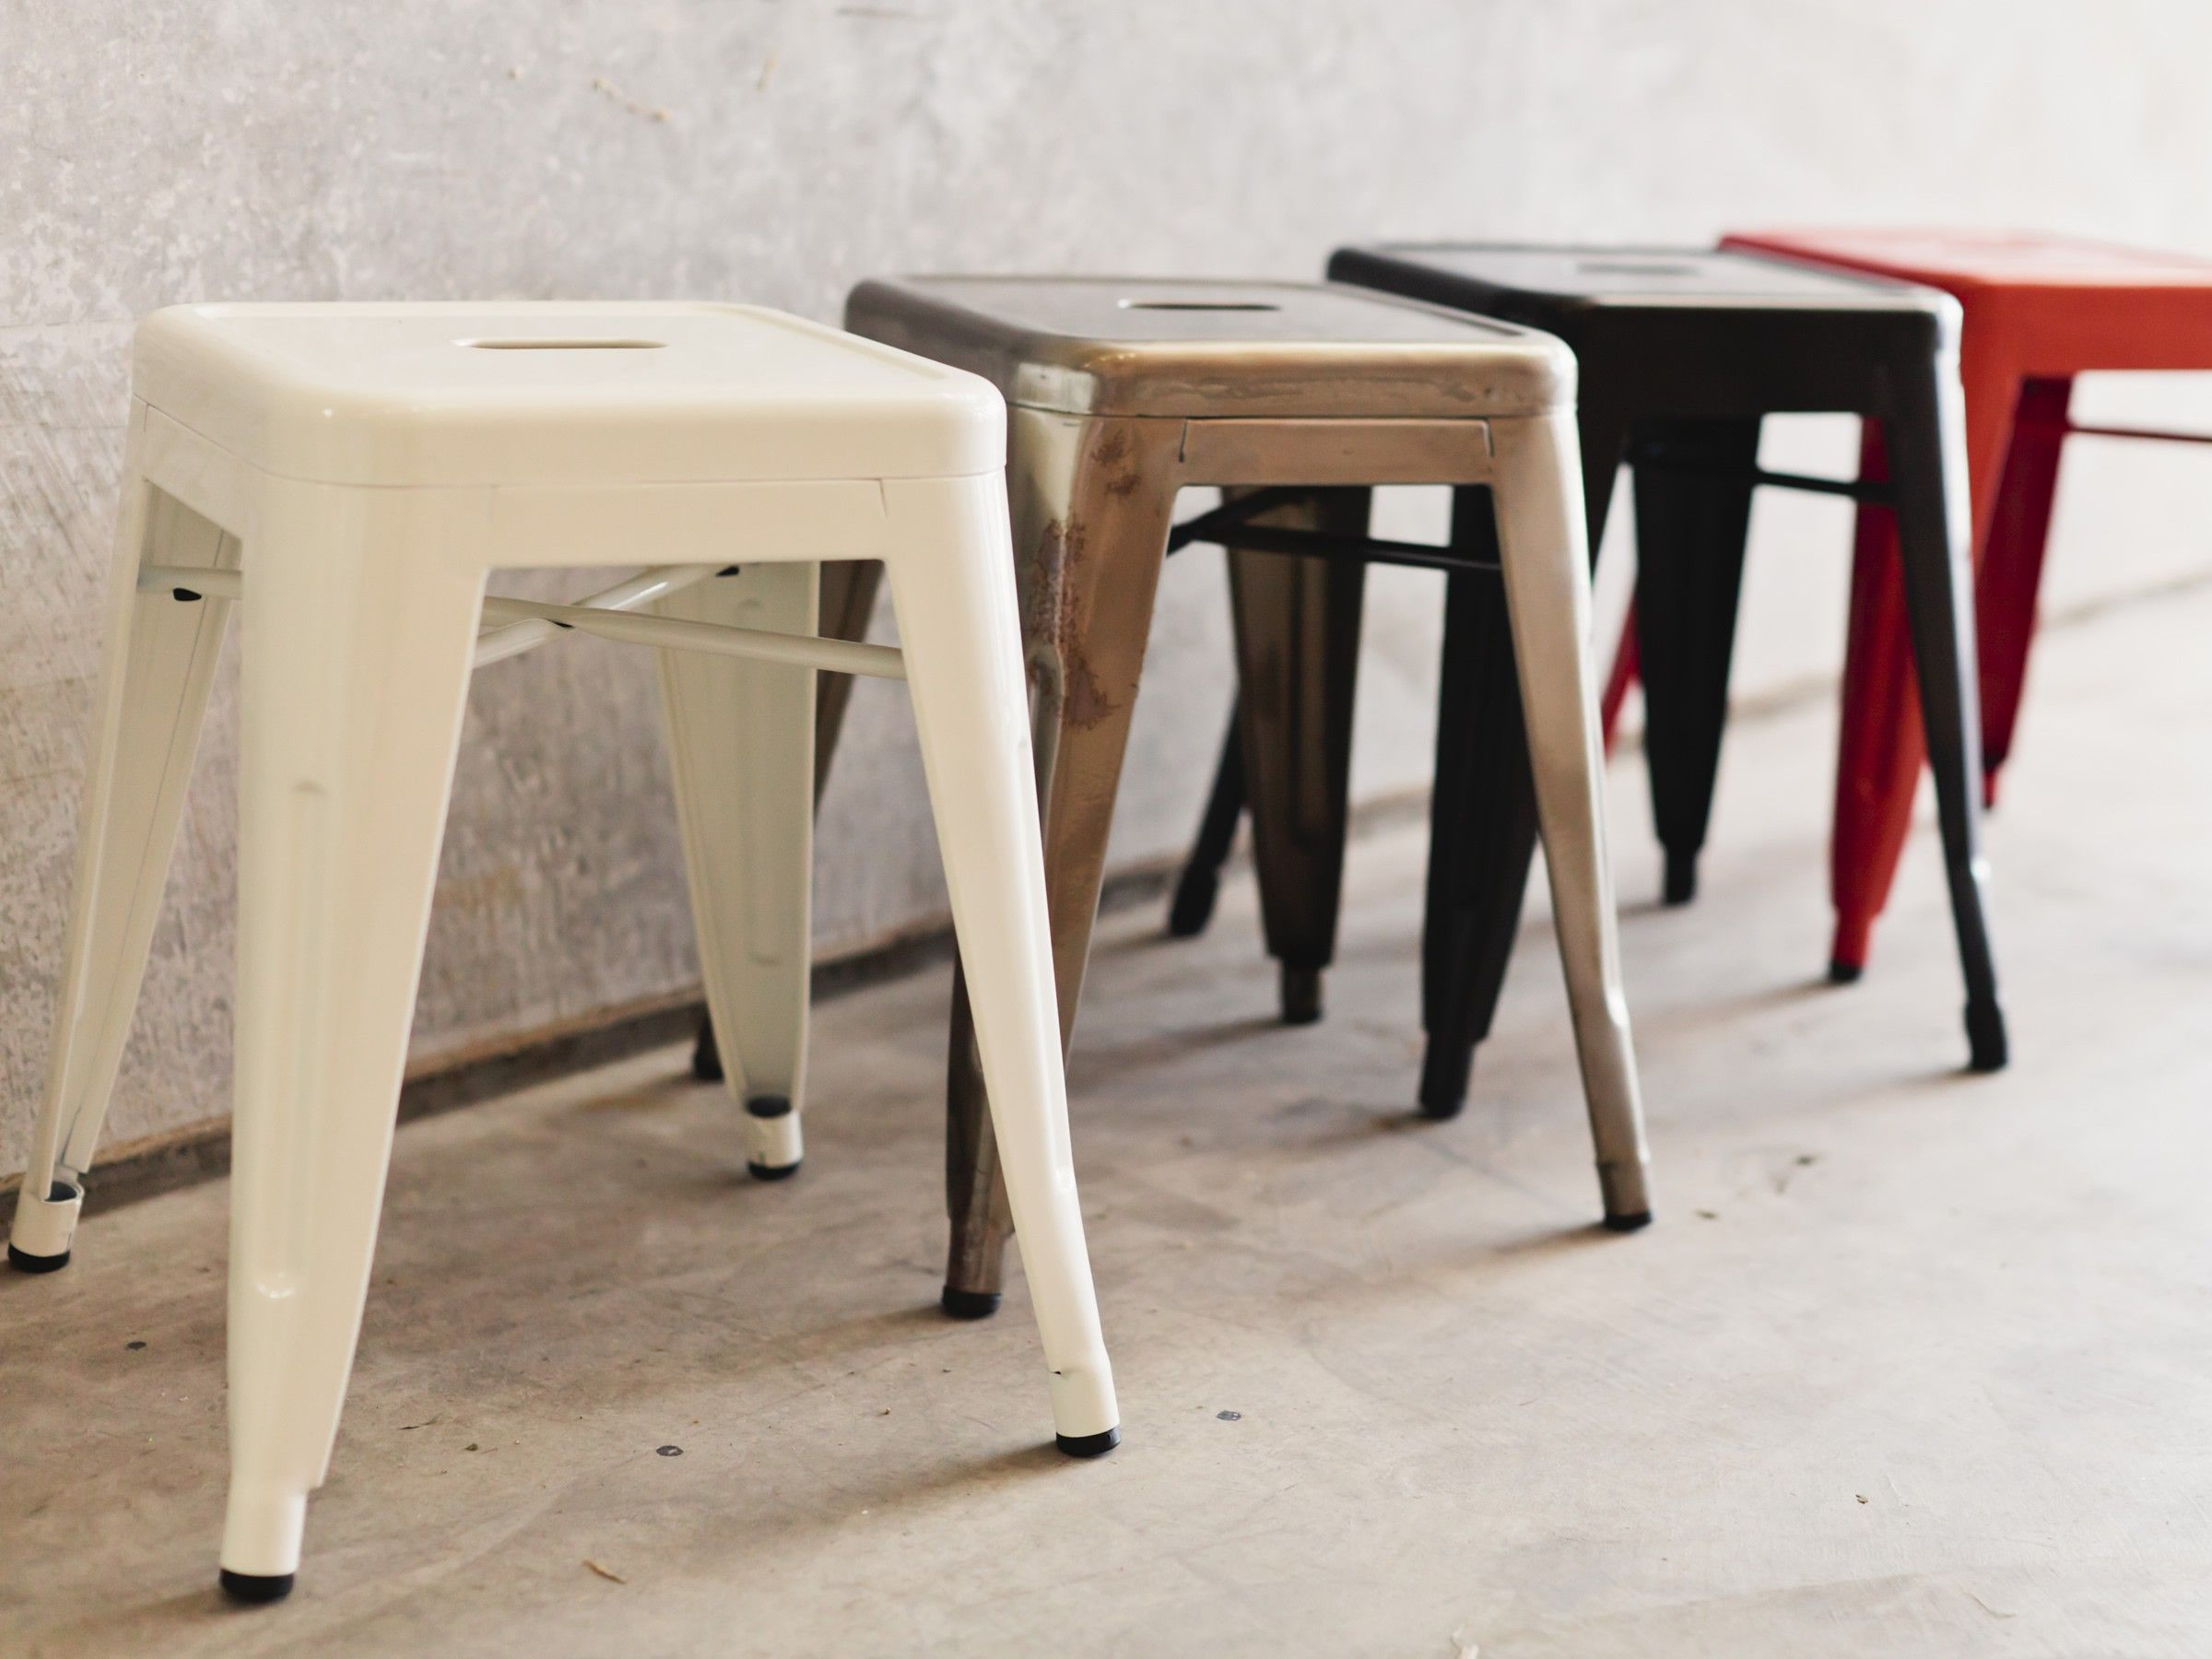 Mocka Industrial Stool Small Stylish For Home And Perfect For Cafes Restaurants And Outdoor U Small Dining Room Furniture Industrial Stool Dining Room Small